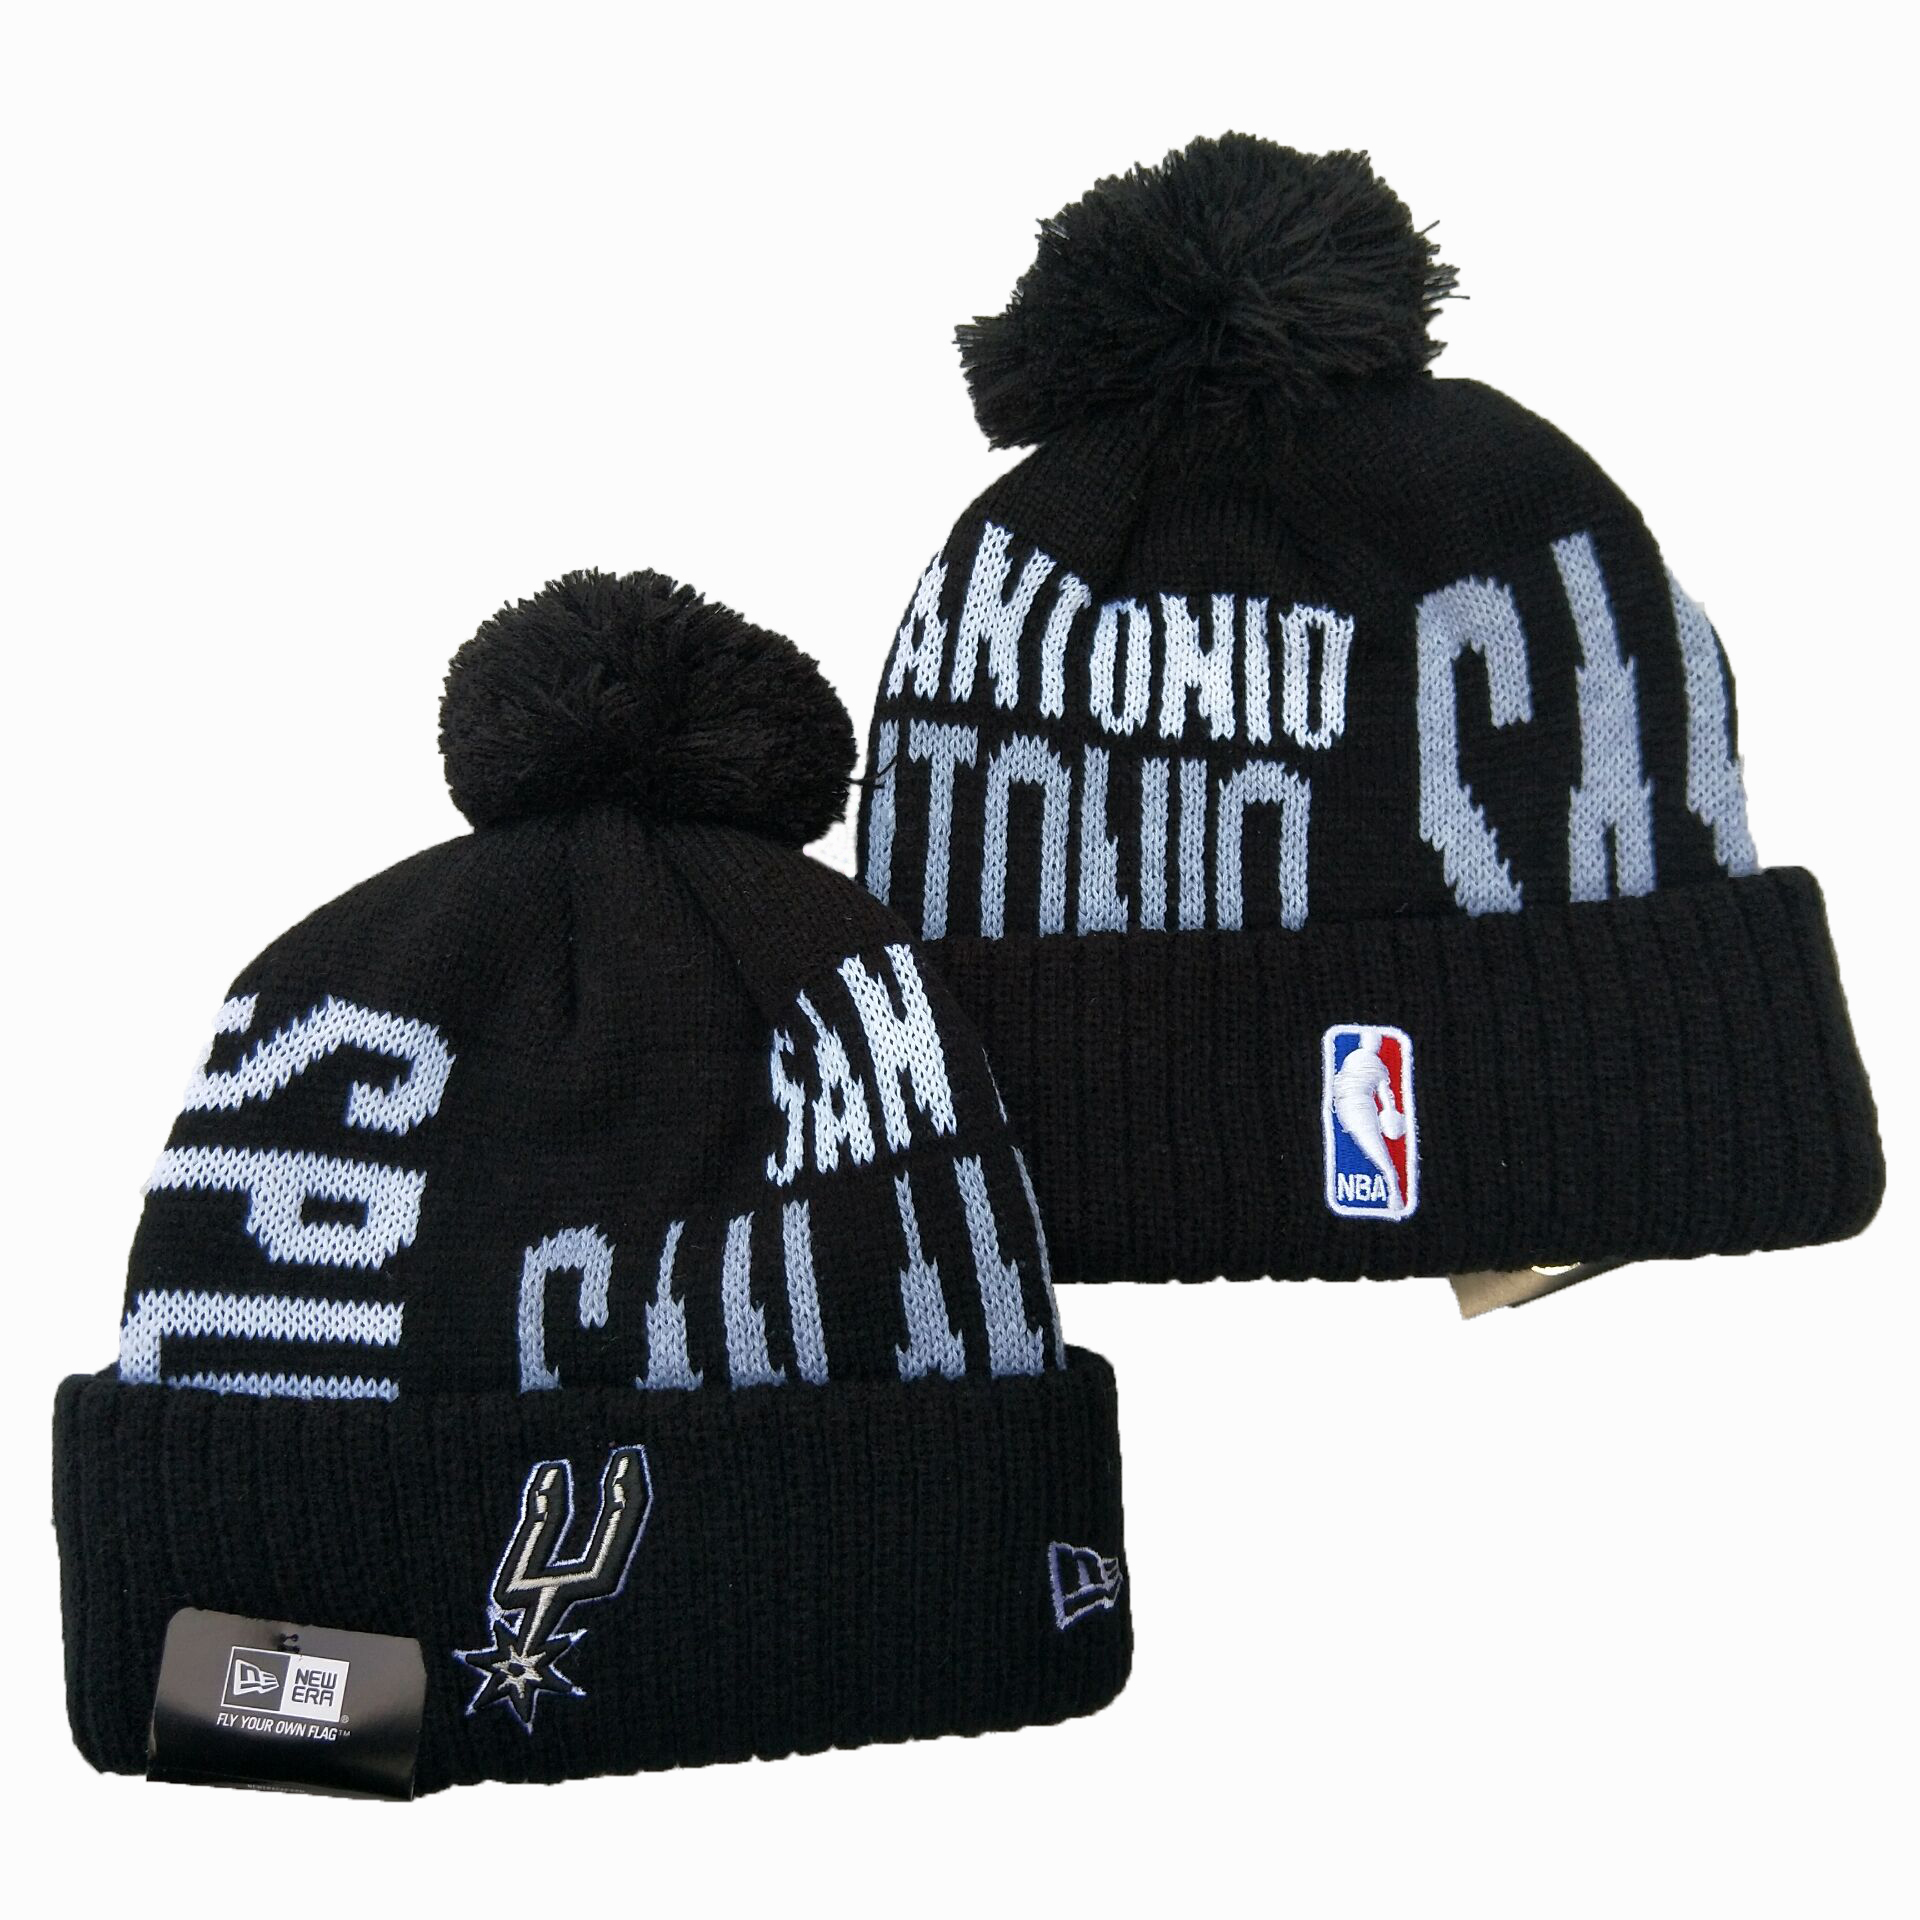 NBA San Antonio Spurs 2019 Knit Hats 008